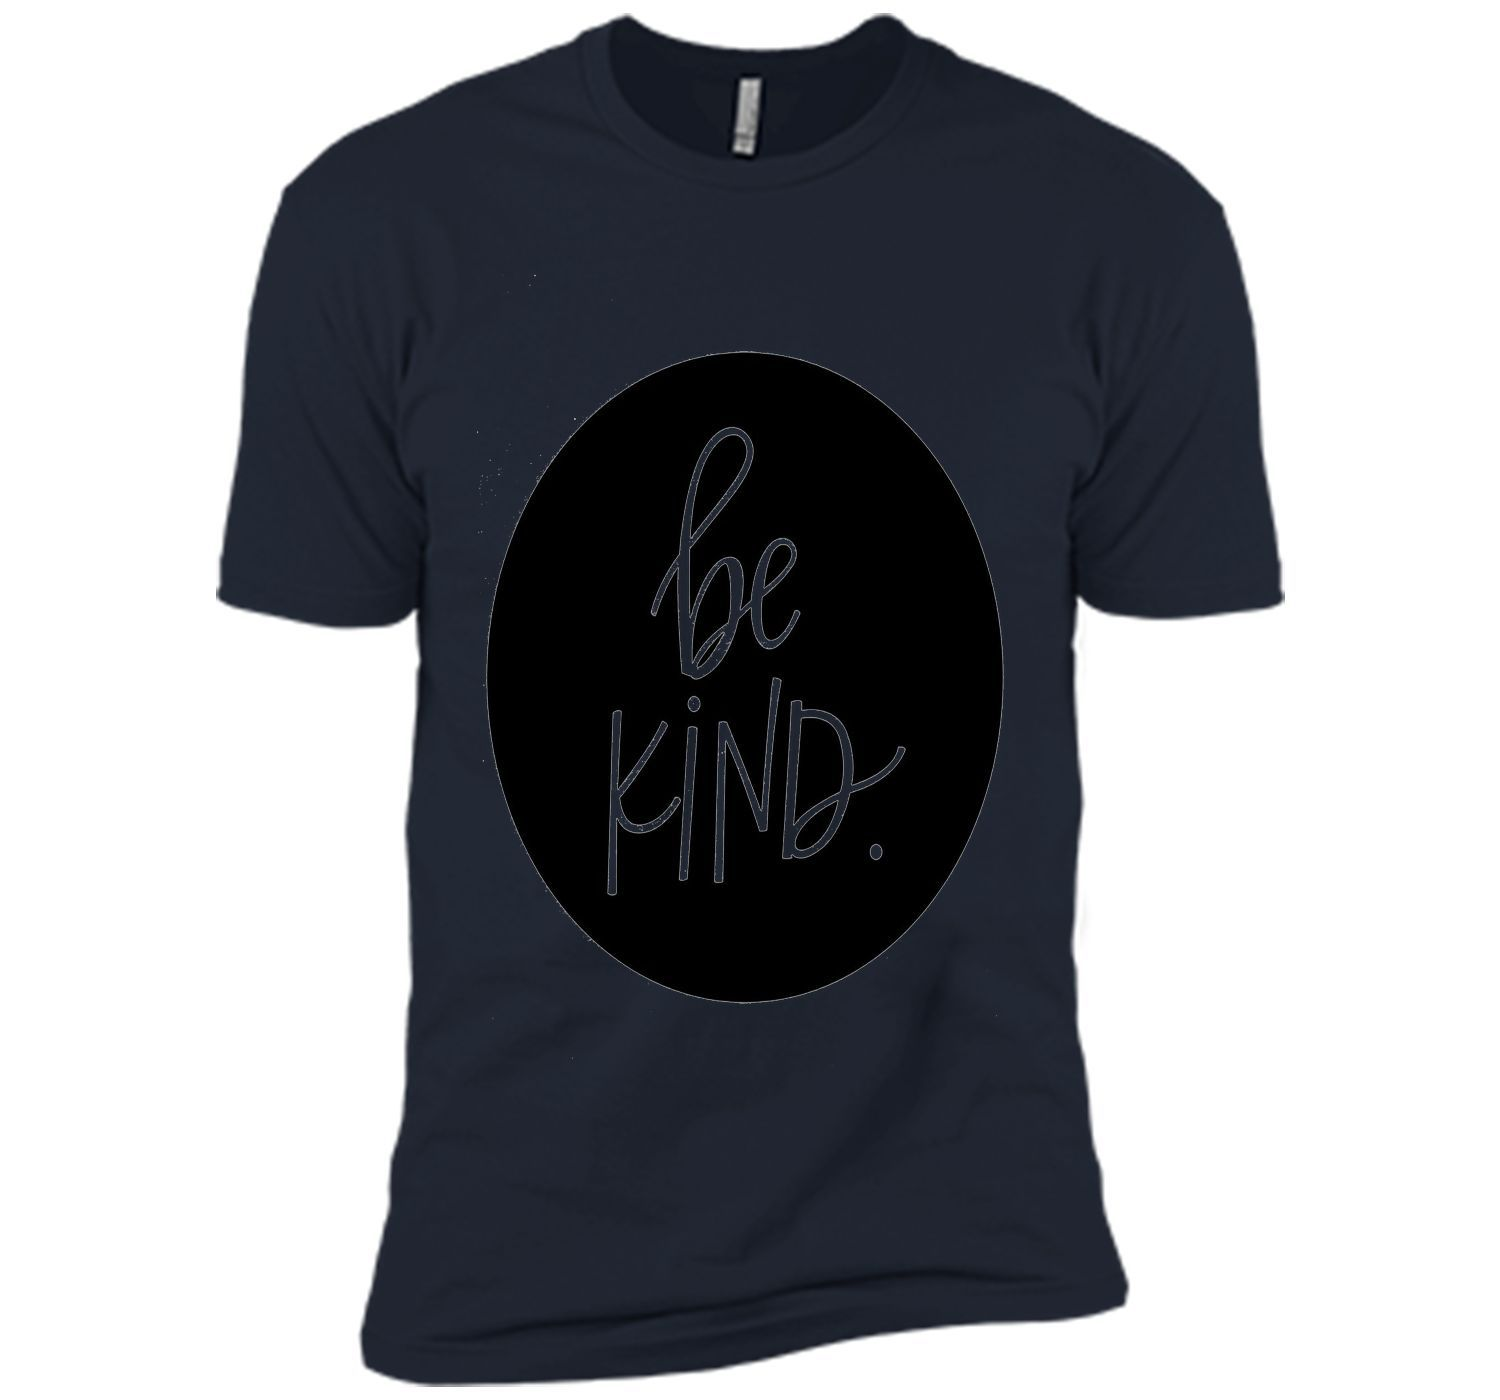 Positive Acts of Kindness Be KIND T-shirt, inspiring tee